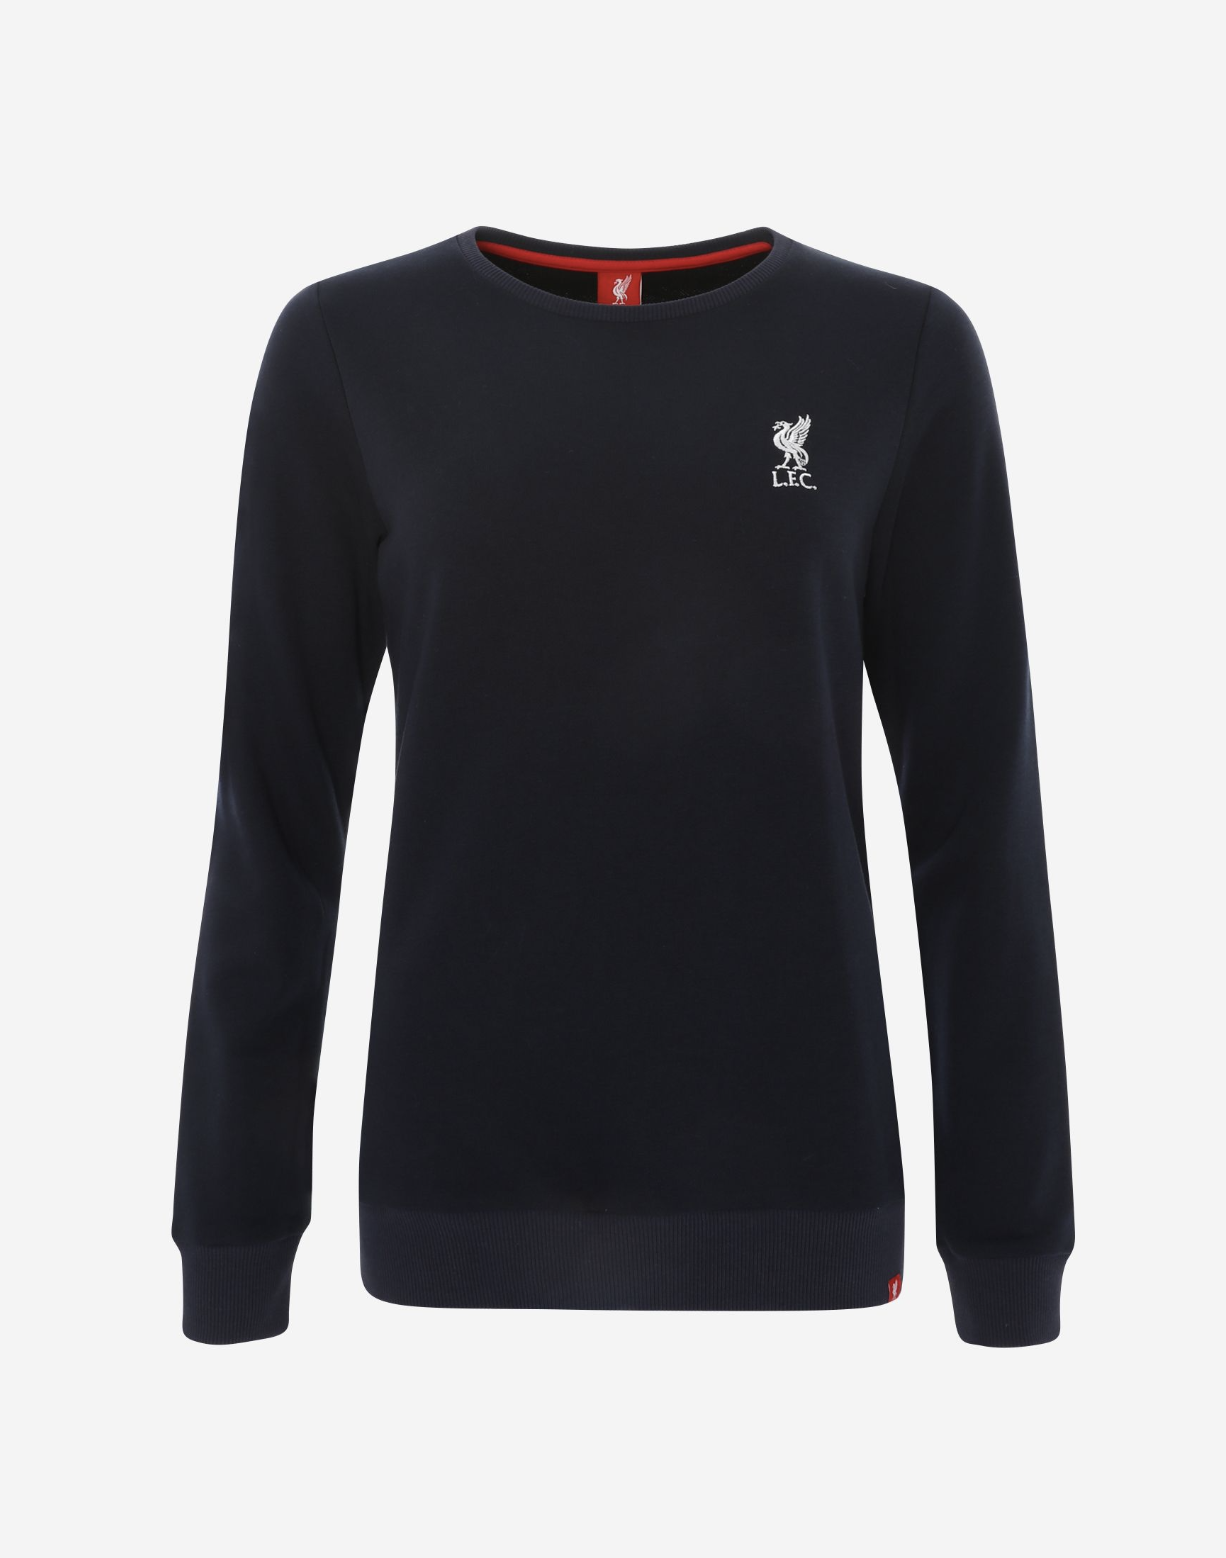 Liverpool FC Womens Navy Crew Neck Sweatshirt